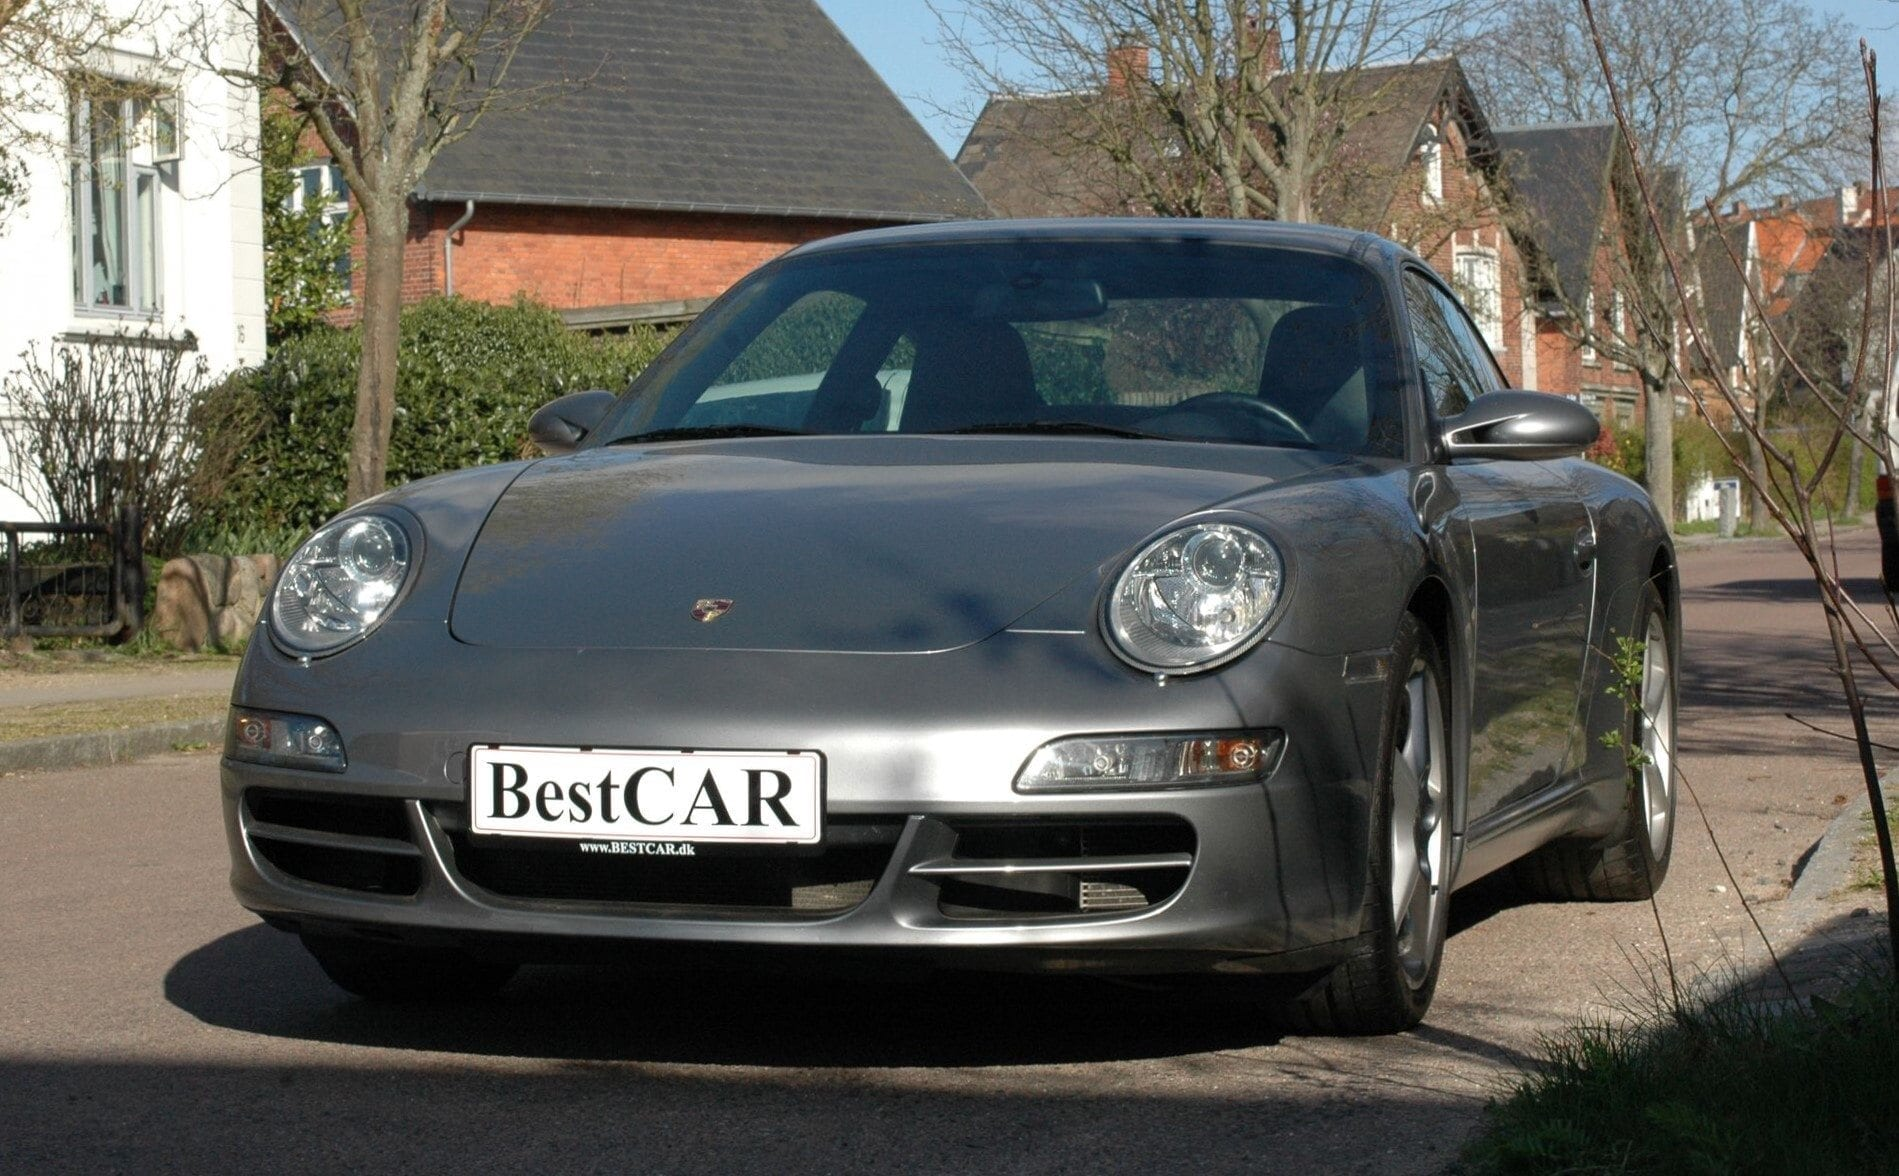 porsche 911 carrera coup tiptronic 997 bestcar. Black Bedroom Furniture Sets. Home Design Ideas